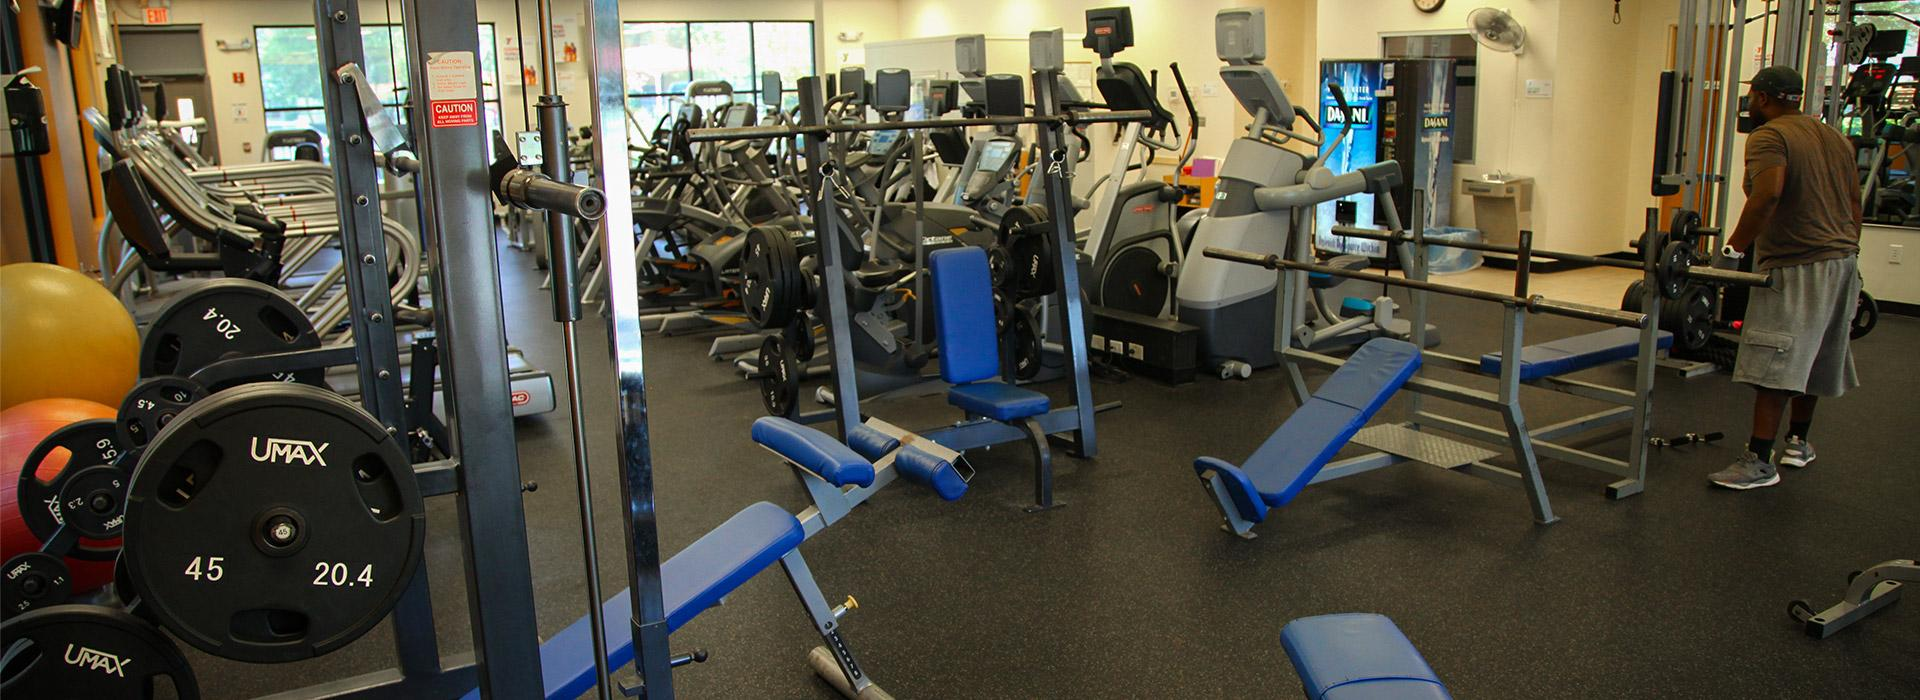 Effingham Street Family YMCA weight room